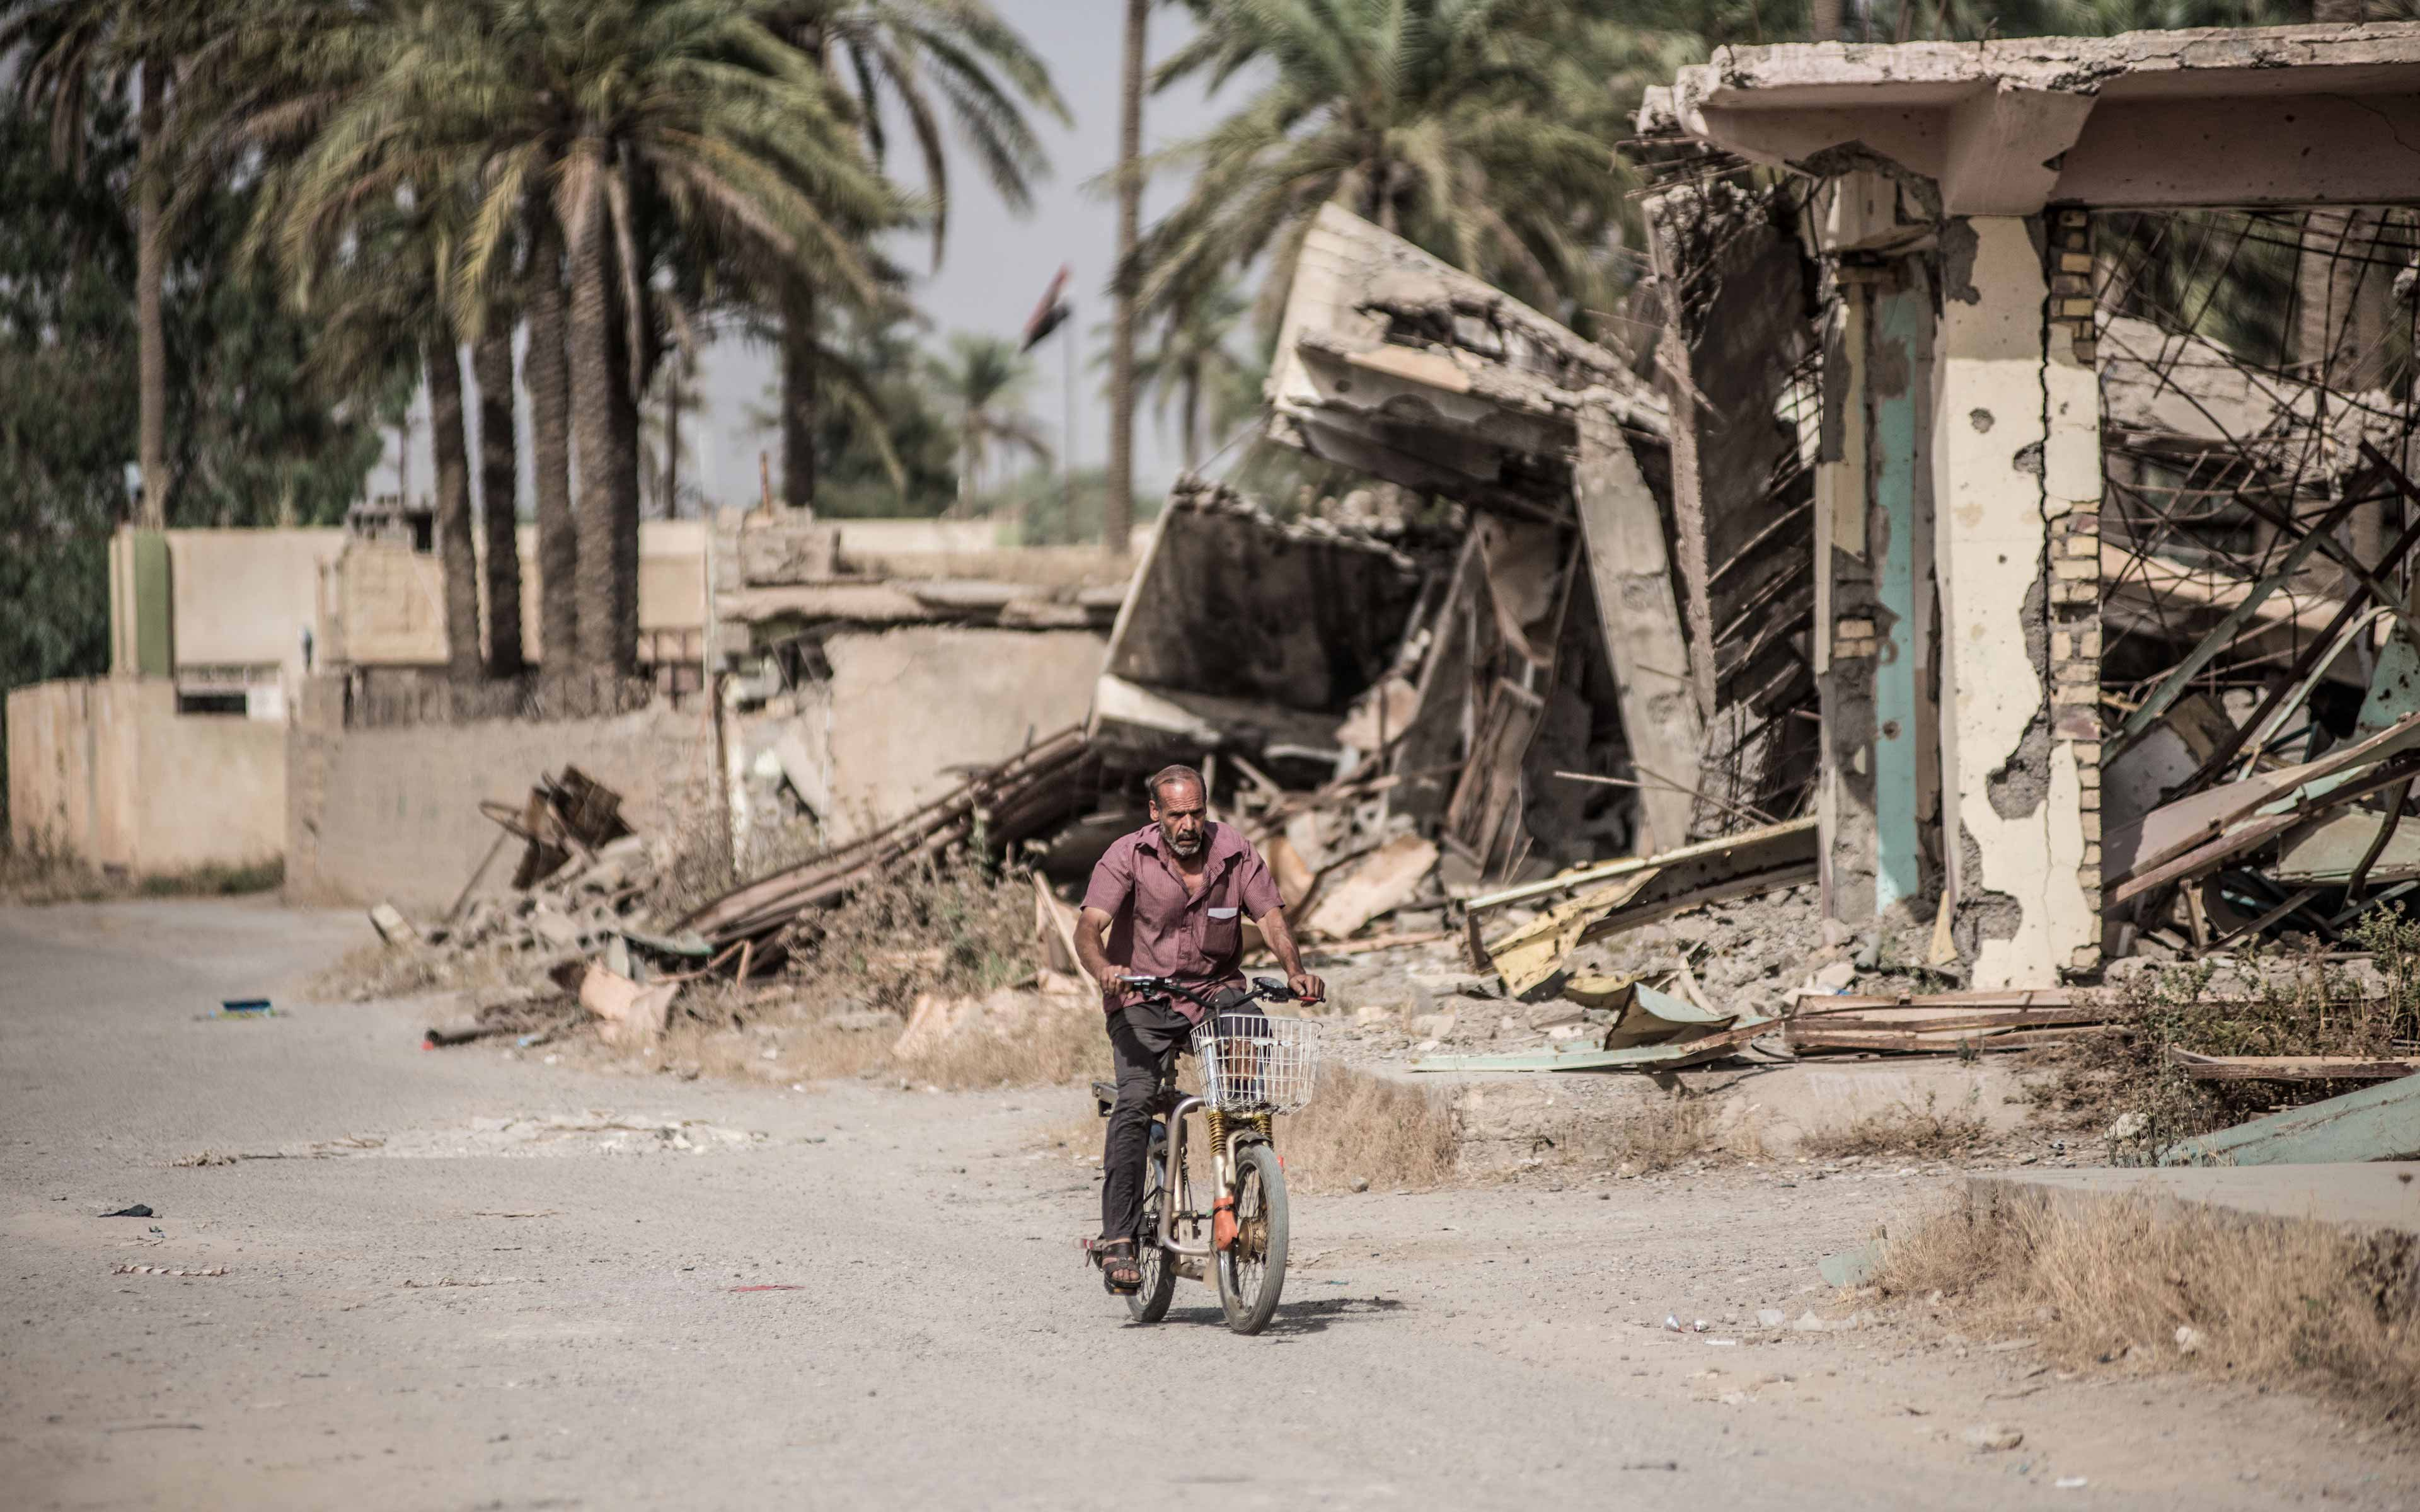 With wreckage around him, a man cycles down the main street of Saadiya. The Iraqi town was largely abandoned after ISIS occupied it in 2014. Though it has now been reclaimed, many residents still have not returned.